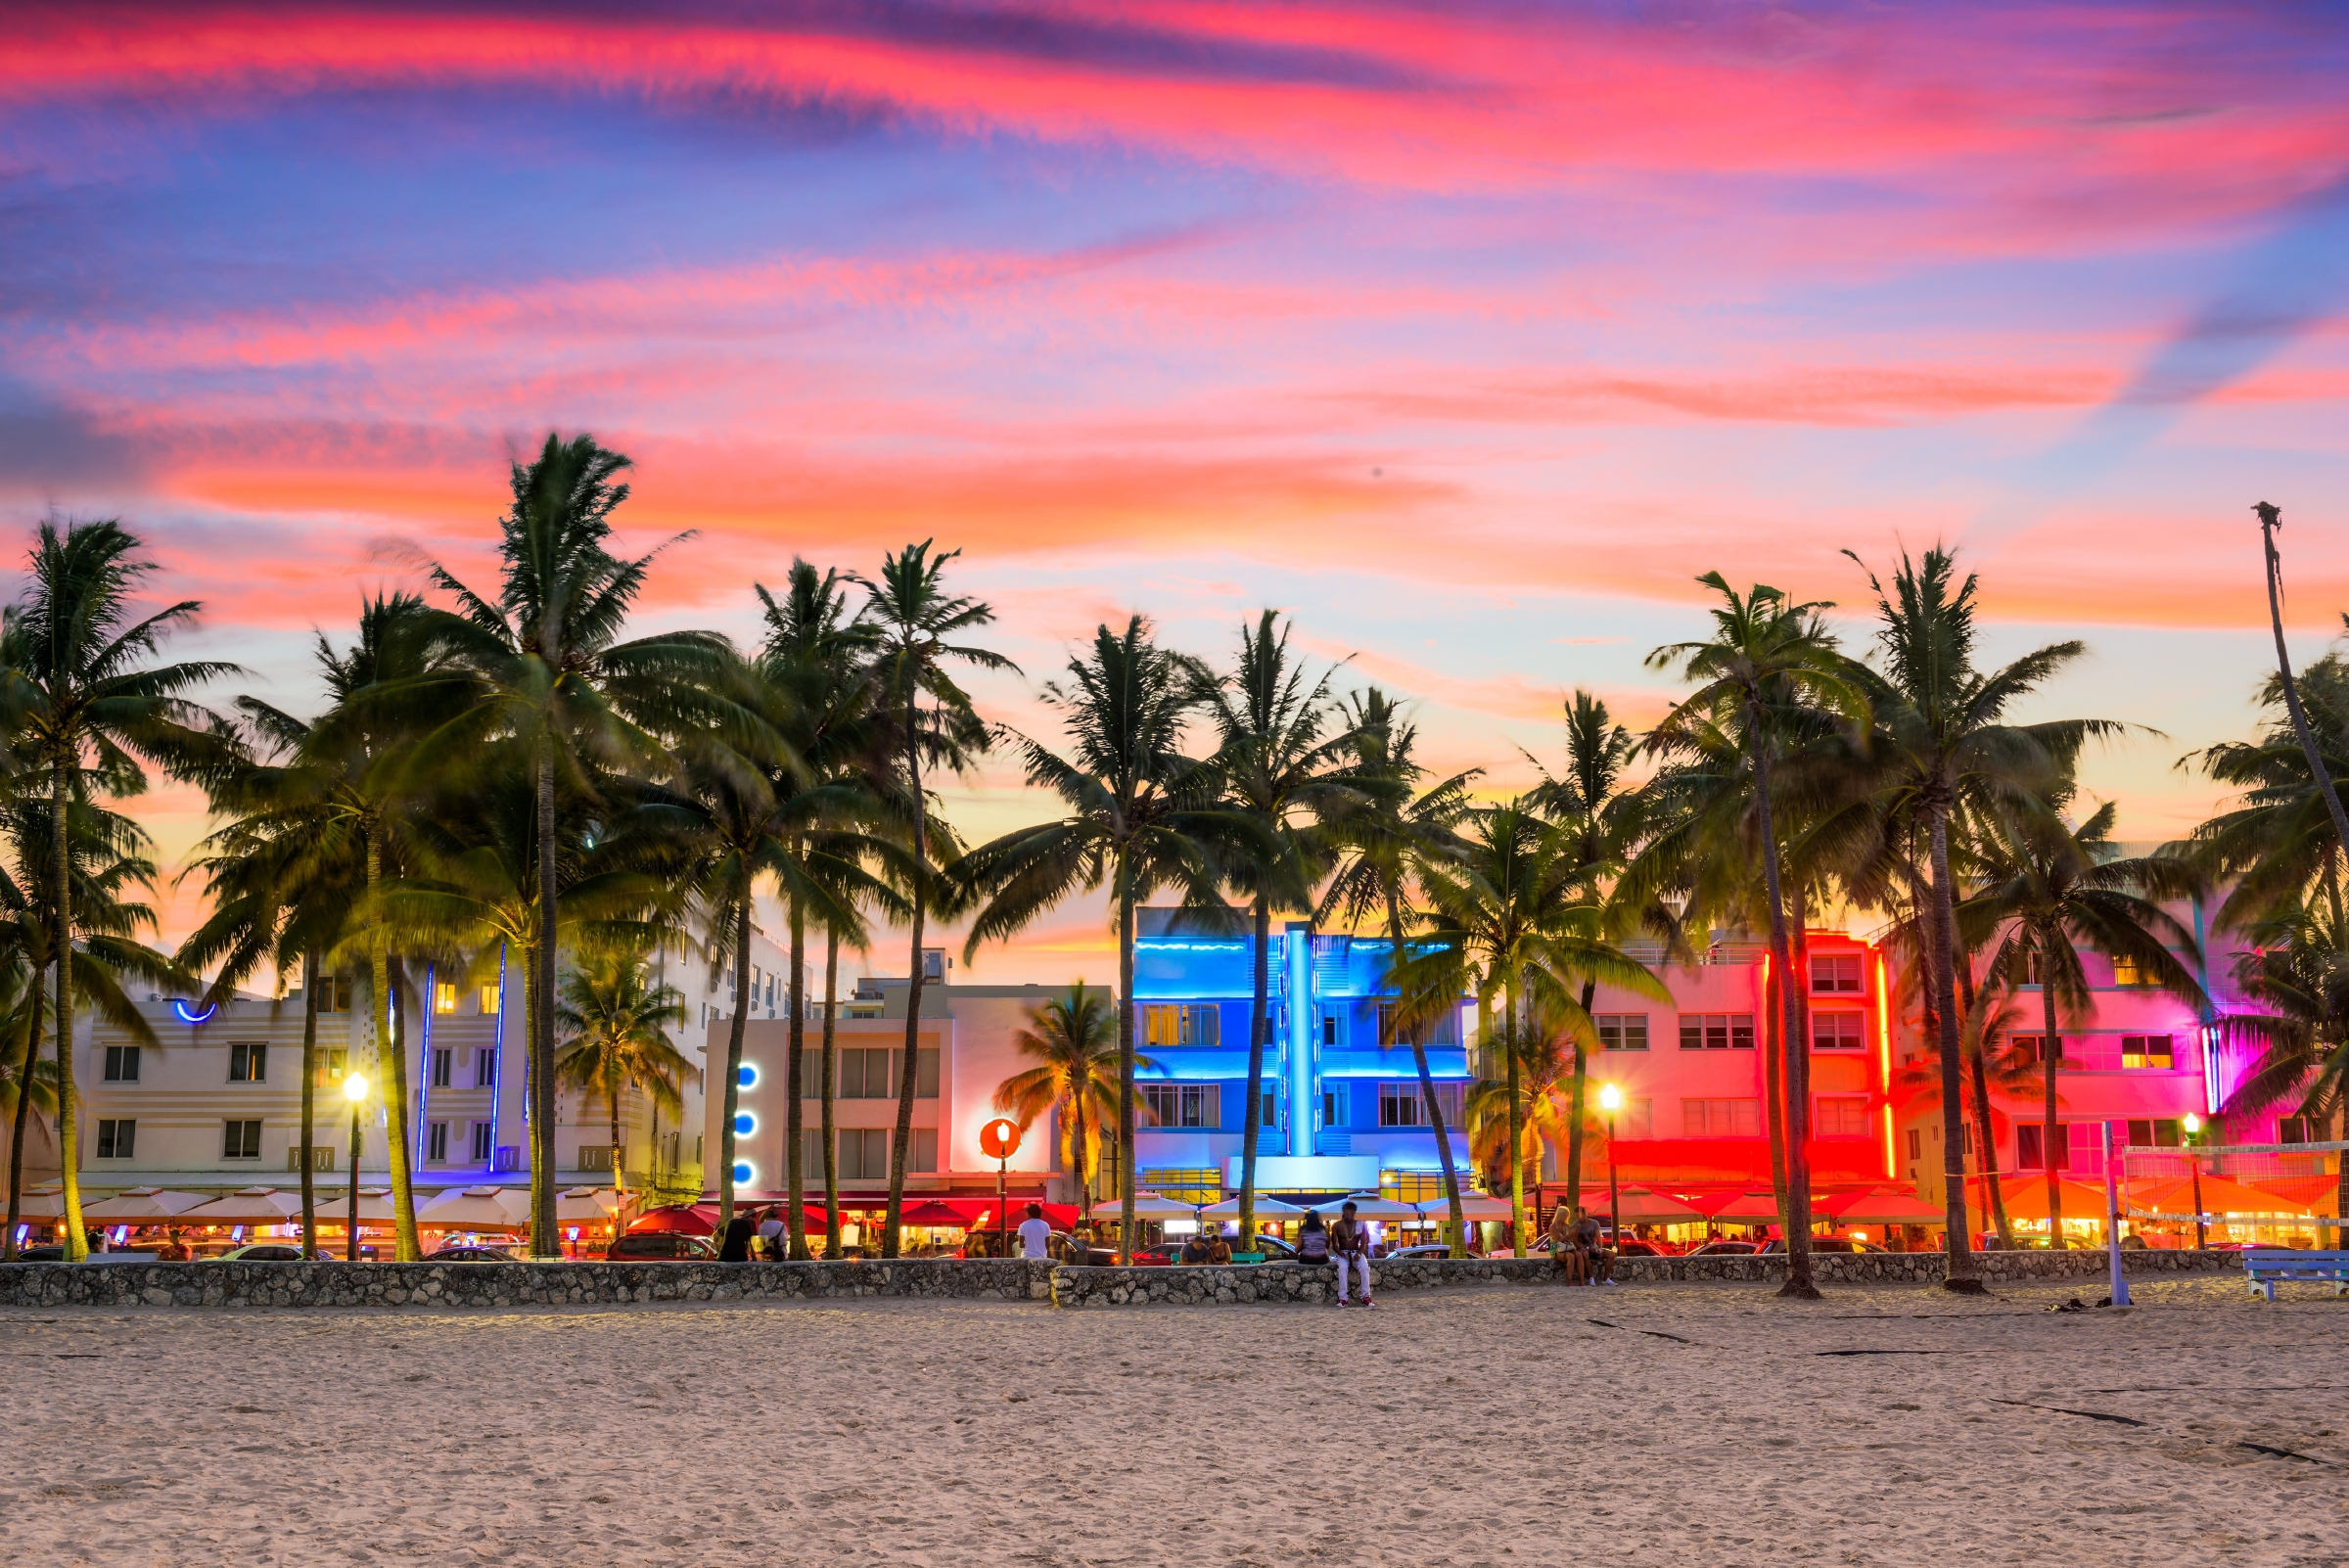 Miami Beach Welcomes LGBTQ Travelers from Around the World to Celebrate this April